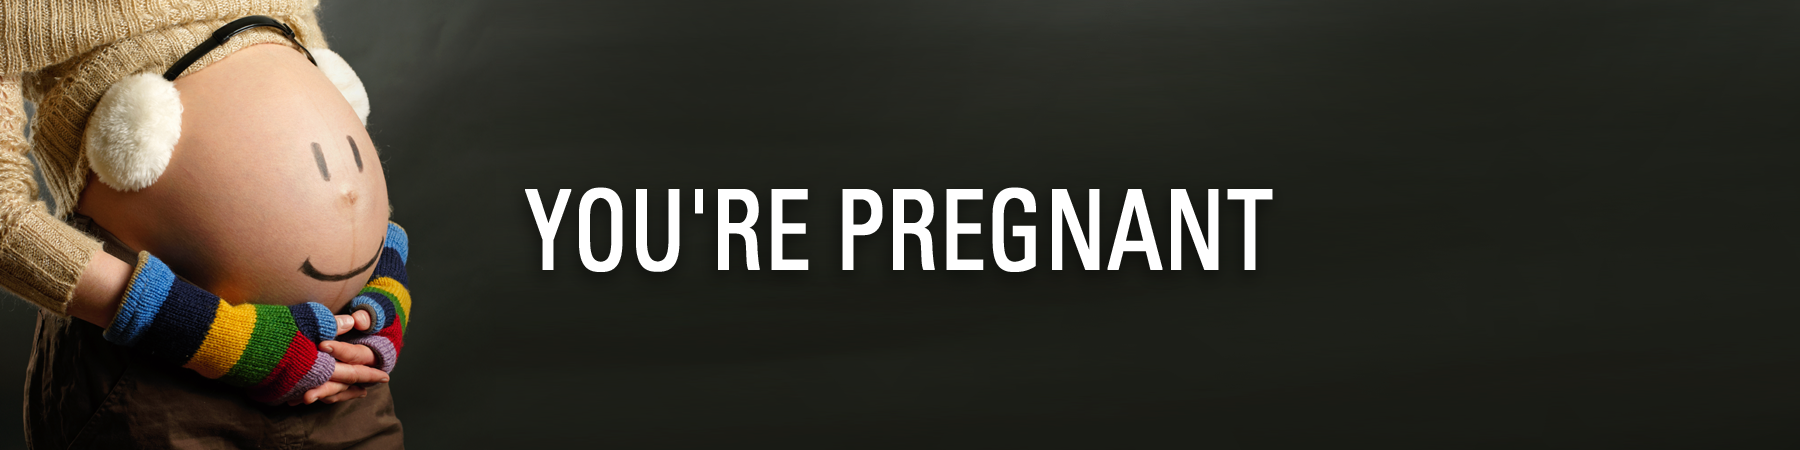 Youre Pregnant 36